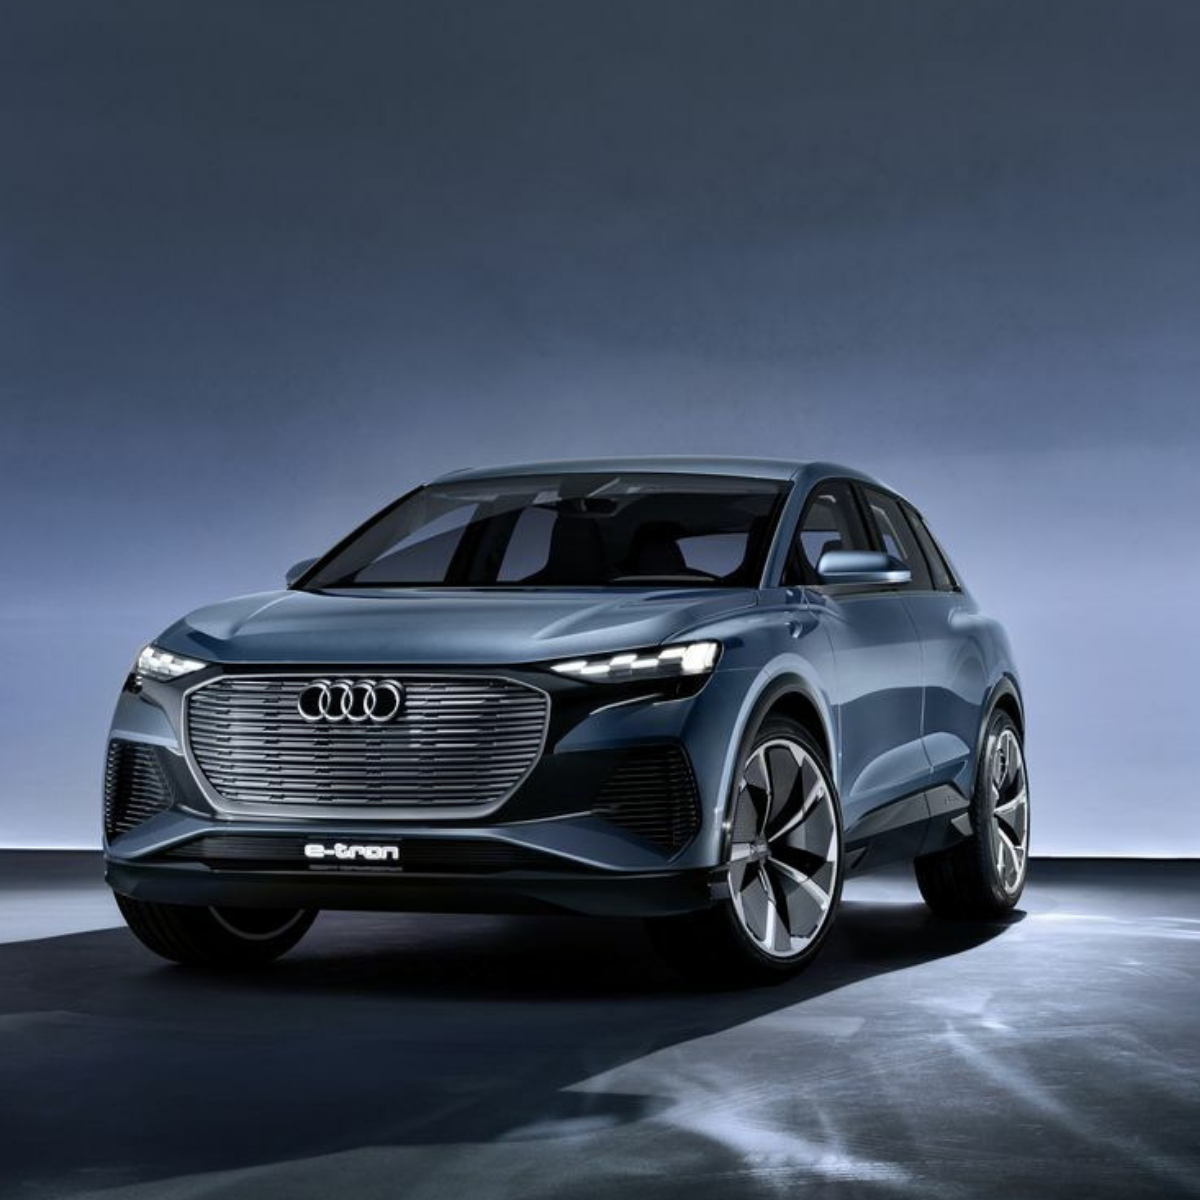 Audi Comes Up With Small Electric Q4 E-Tron SUV With 280